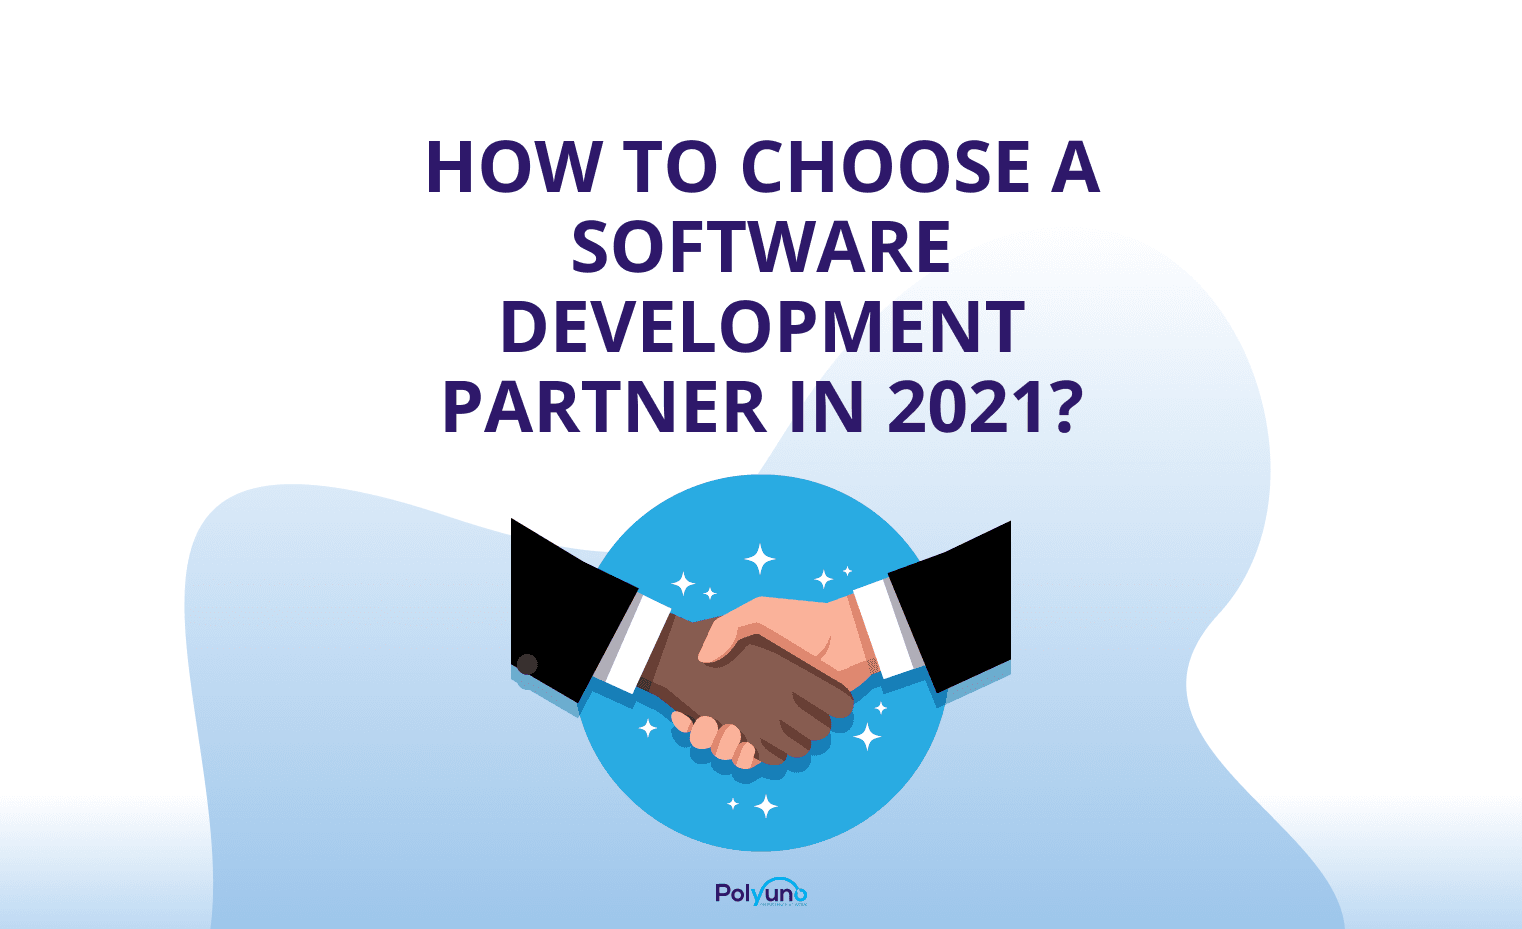 How To Choose A Software Development Partner In 2021?